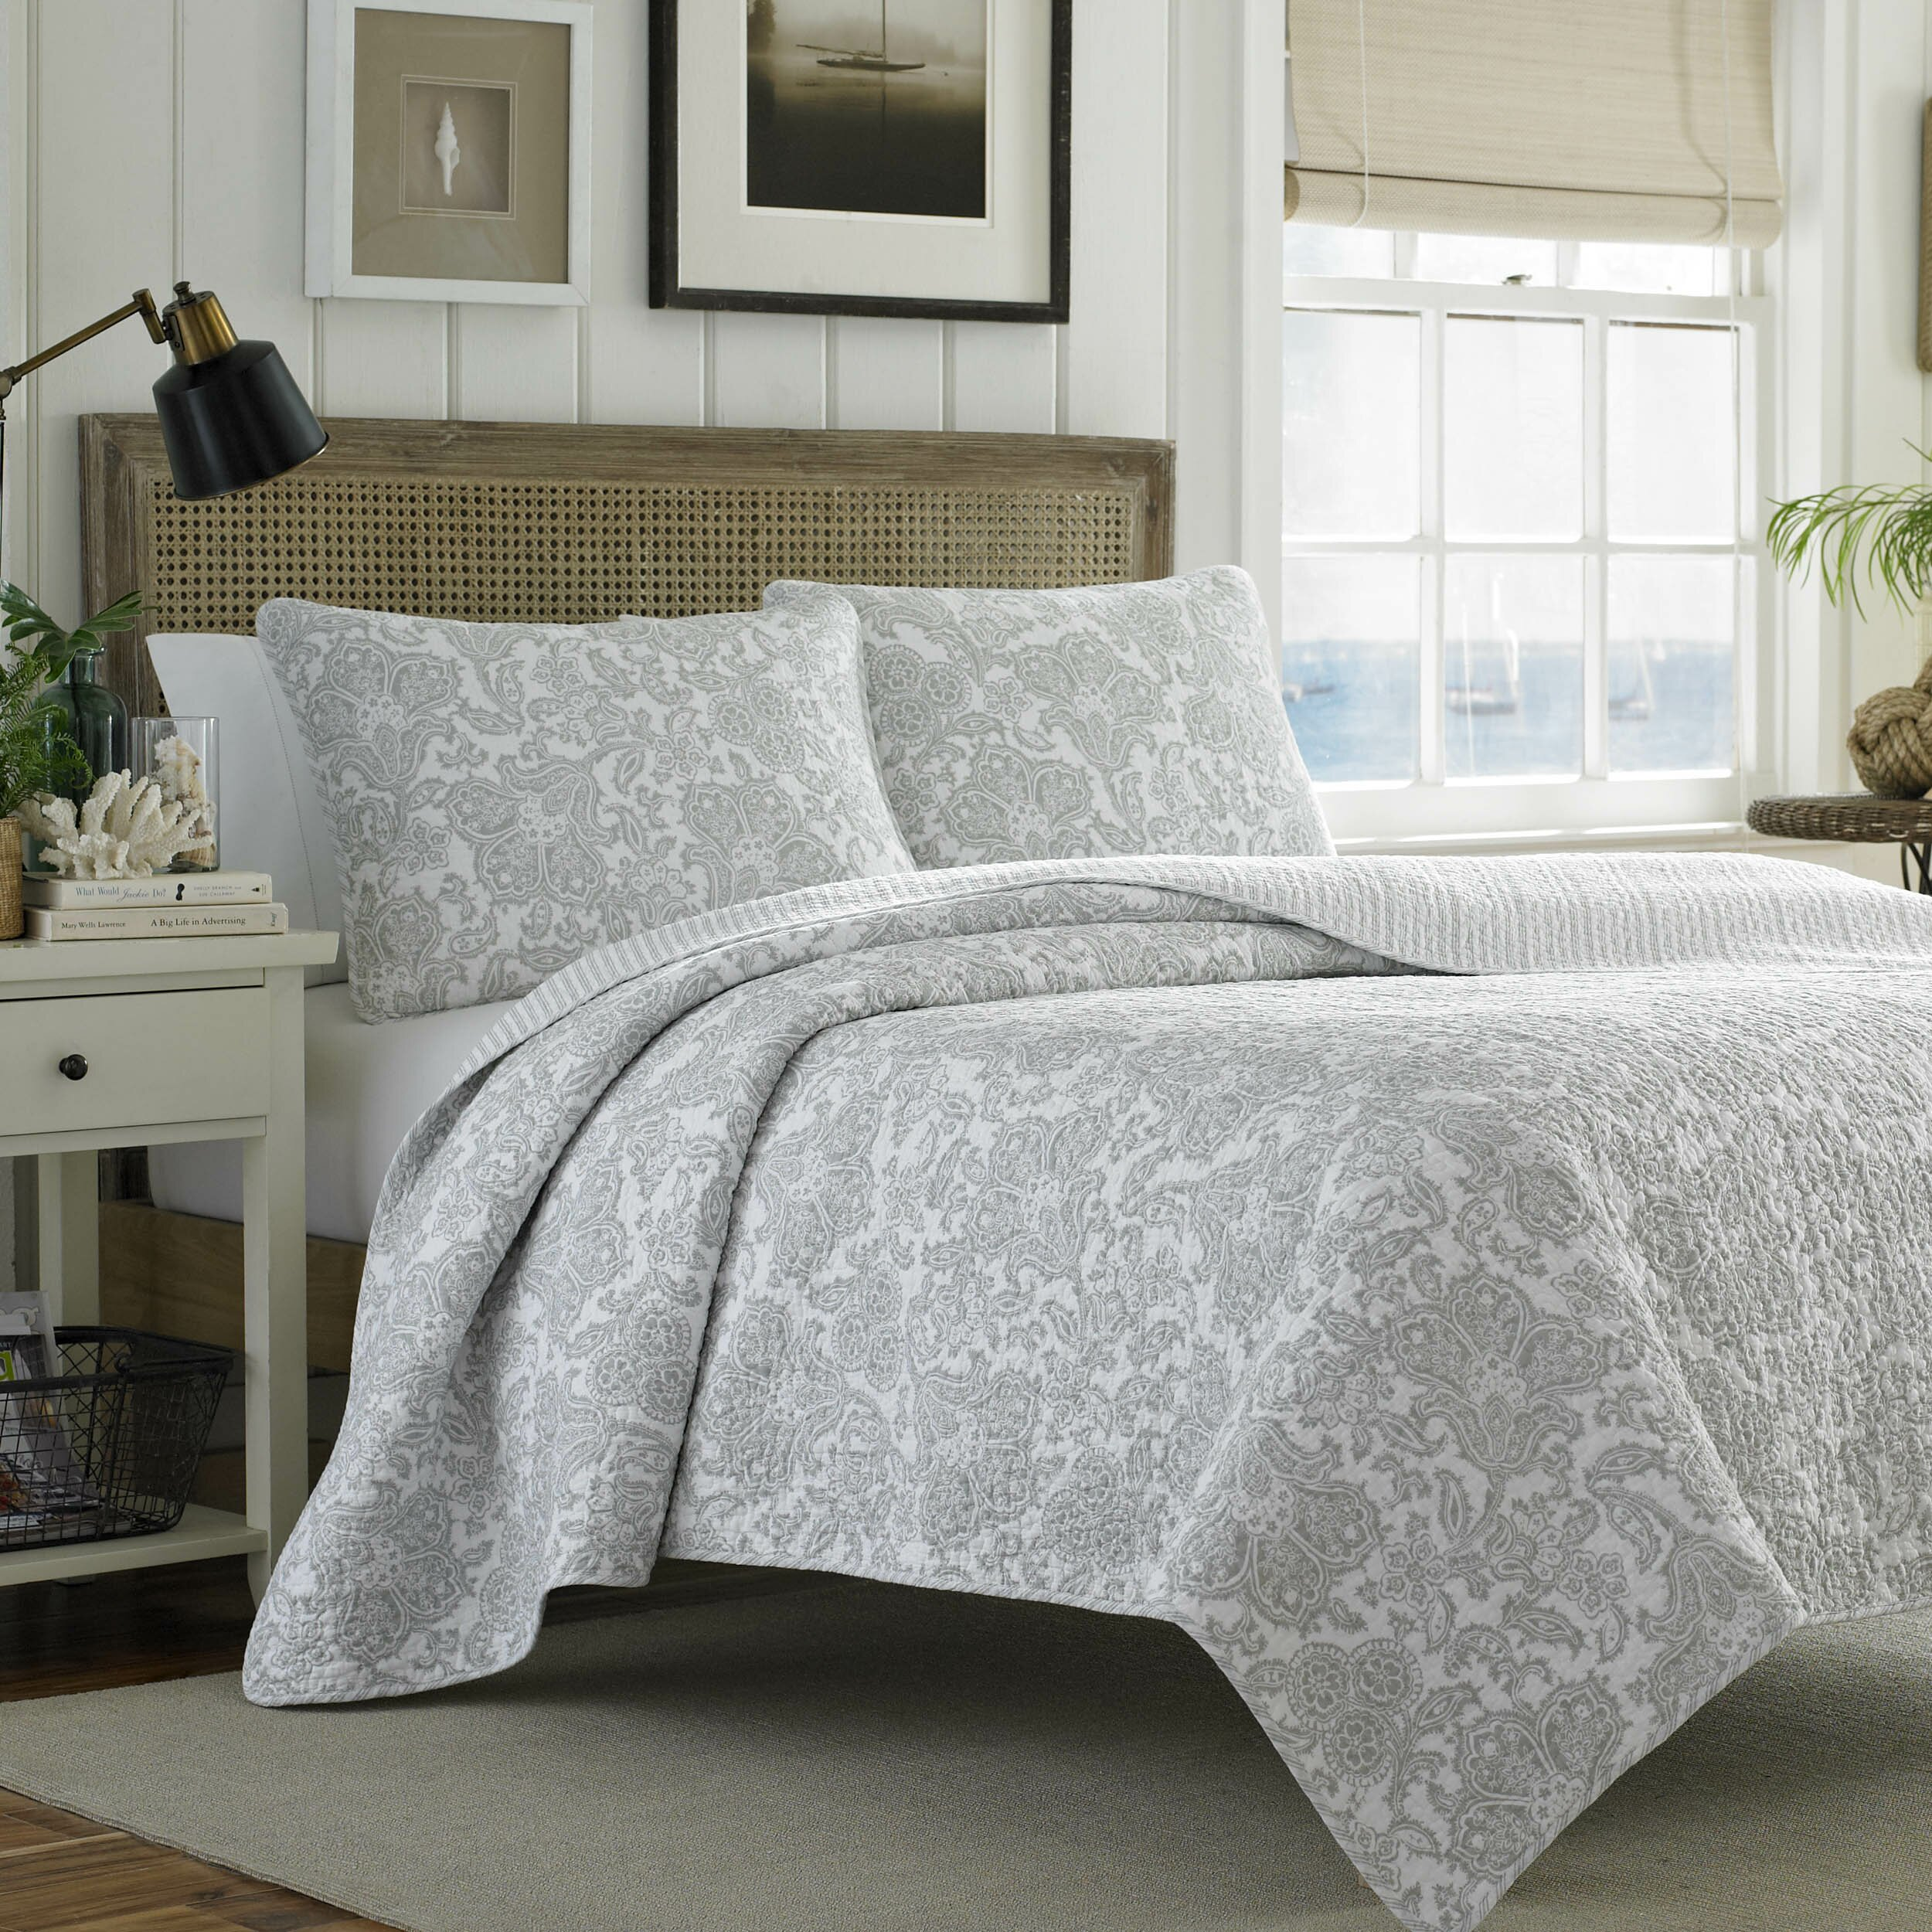 Tommy bahama bedding island memory reversible coverlet set Tommy bahama bedding